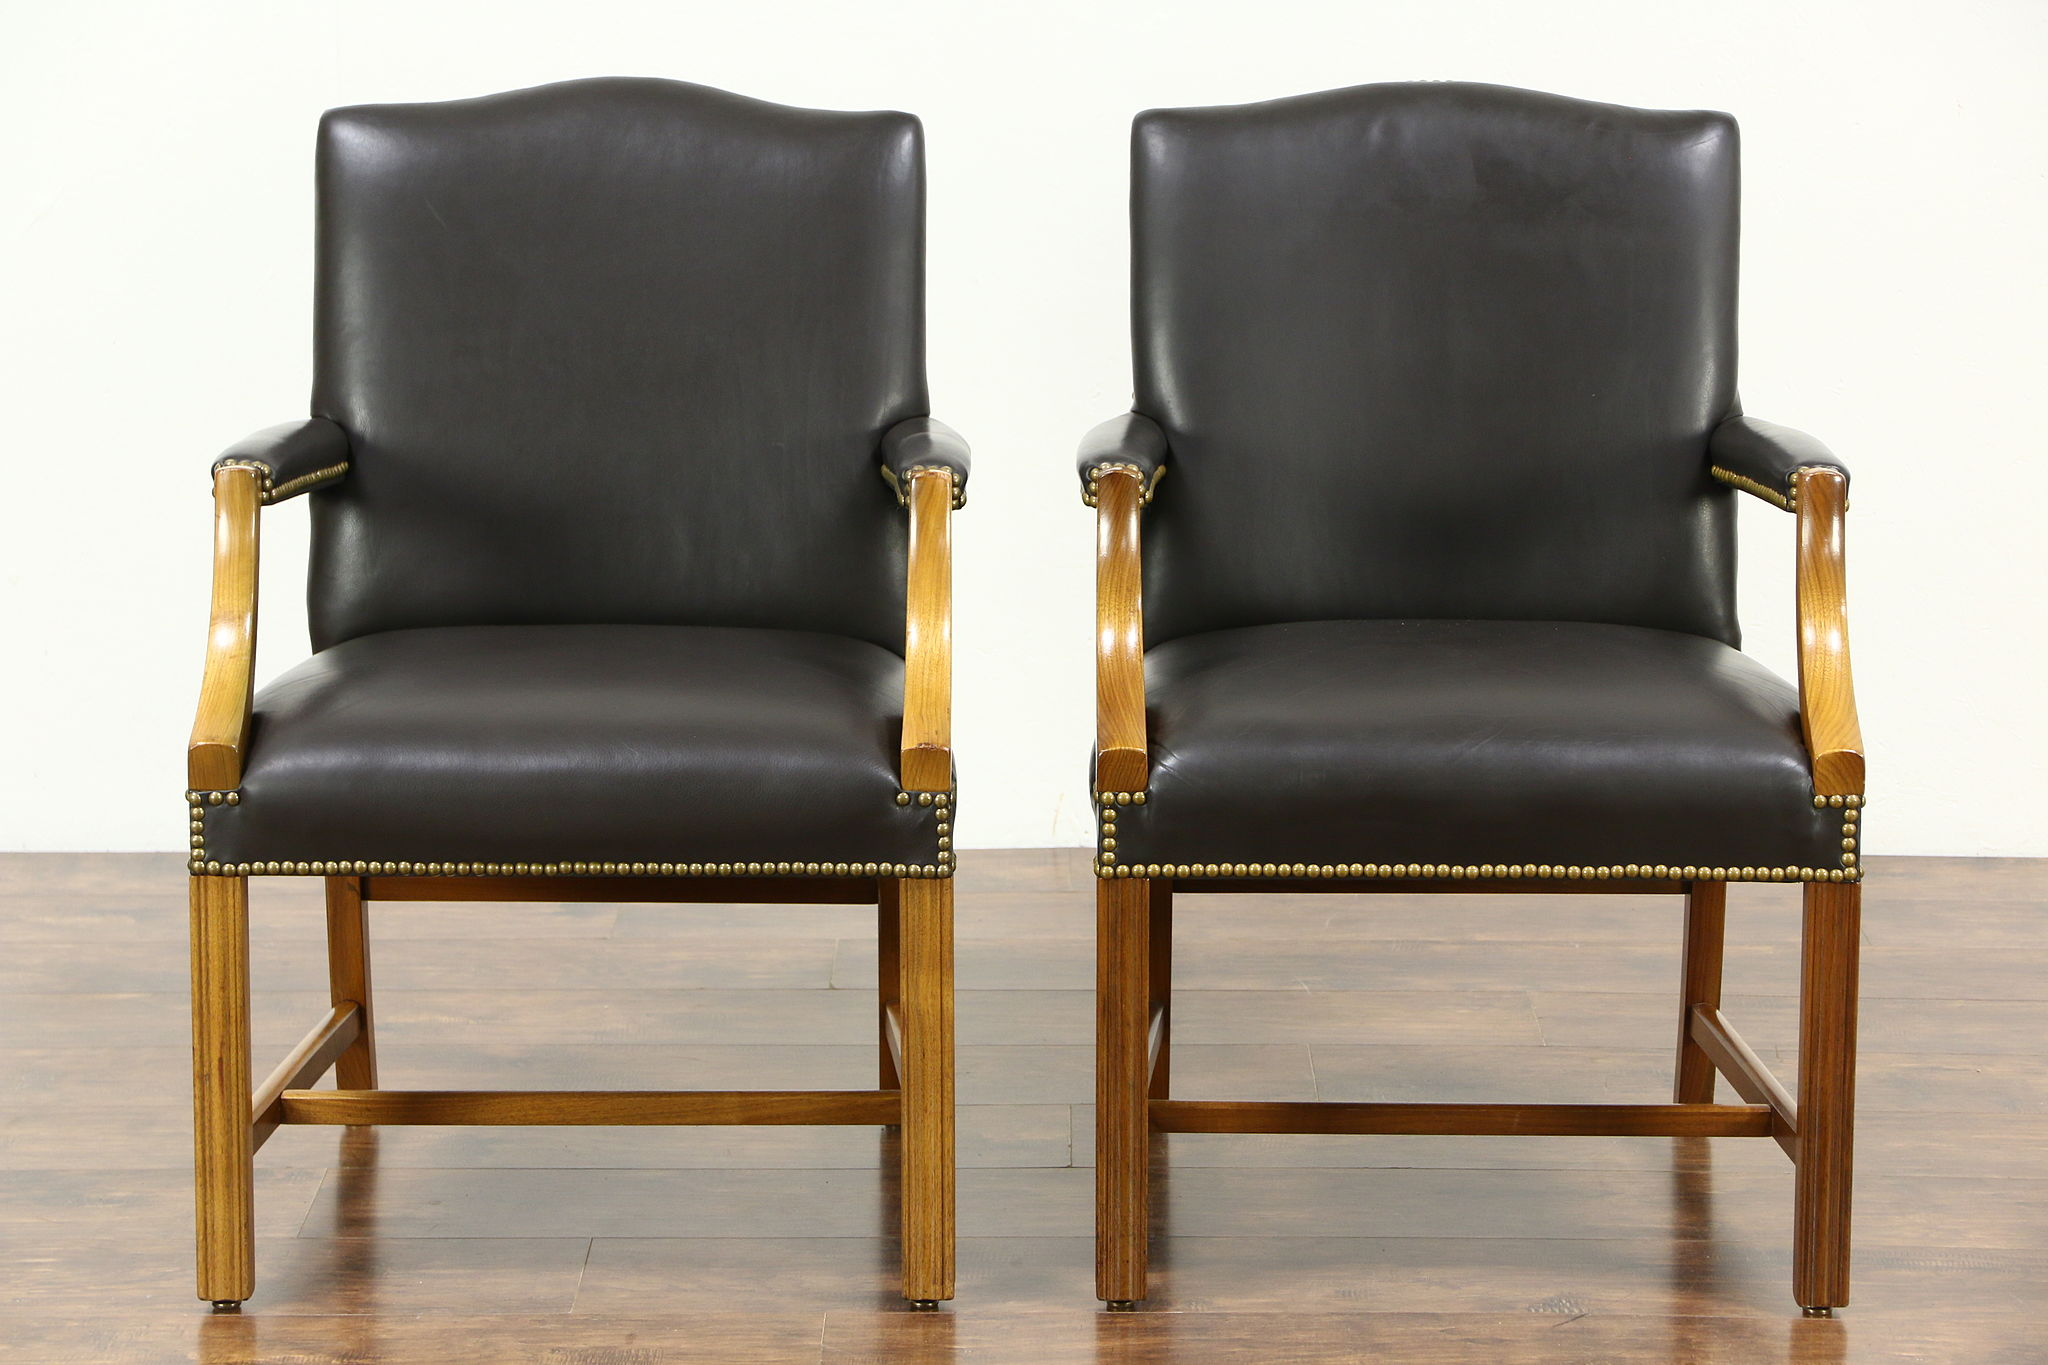 Charming Pair Of Leather Vintage Office Or Library Chairs With Arms, Signed Taylor